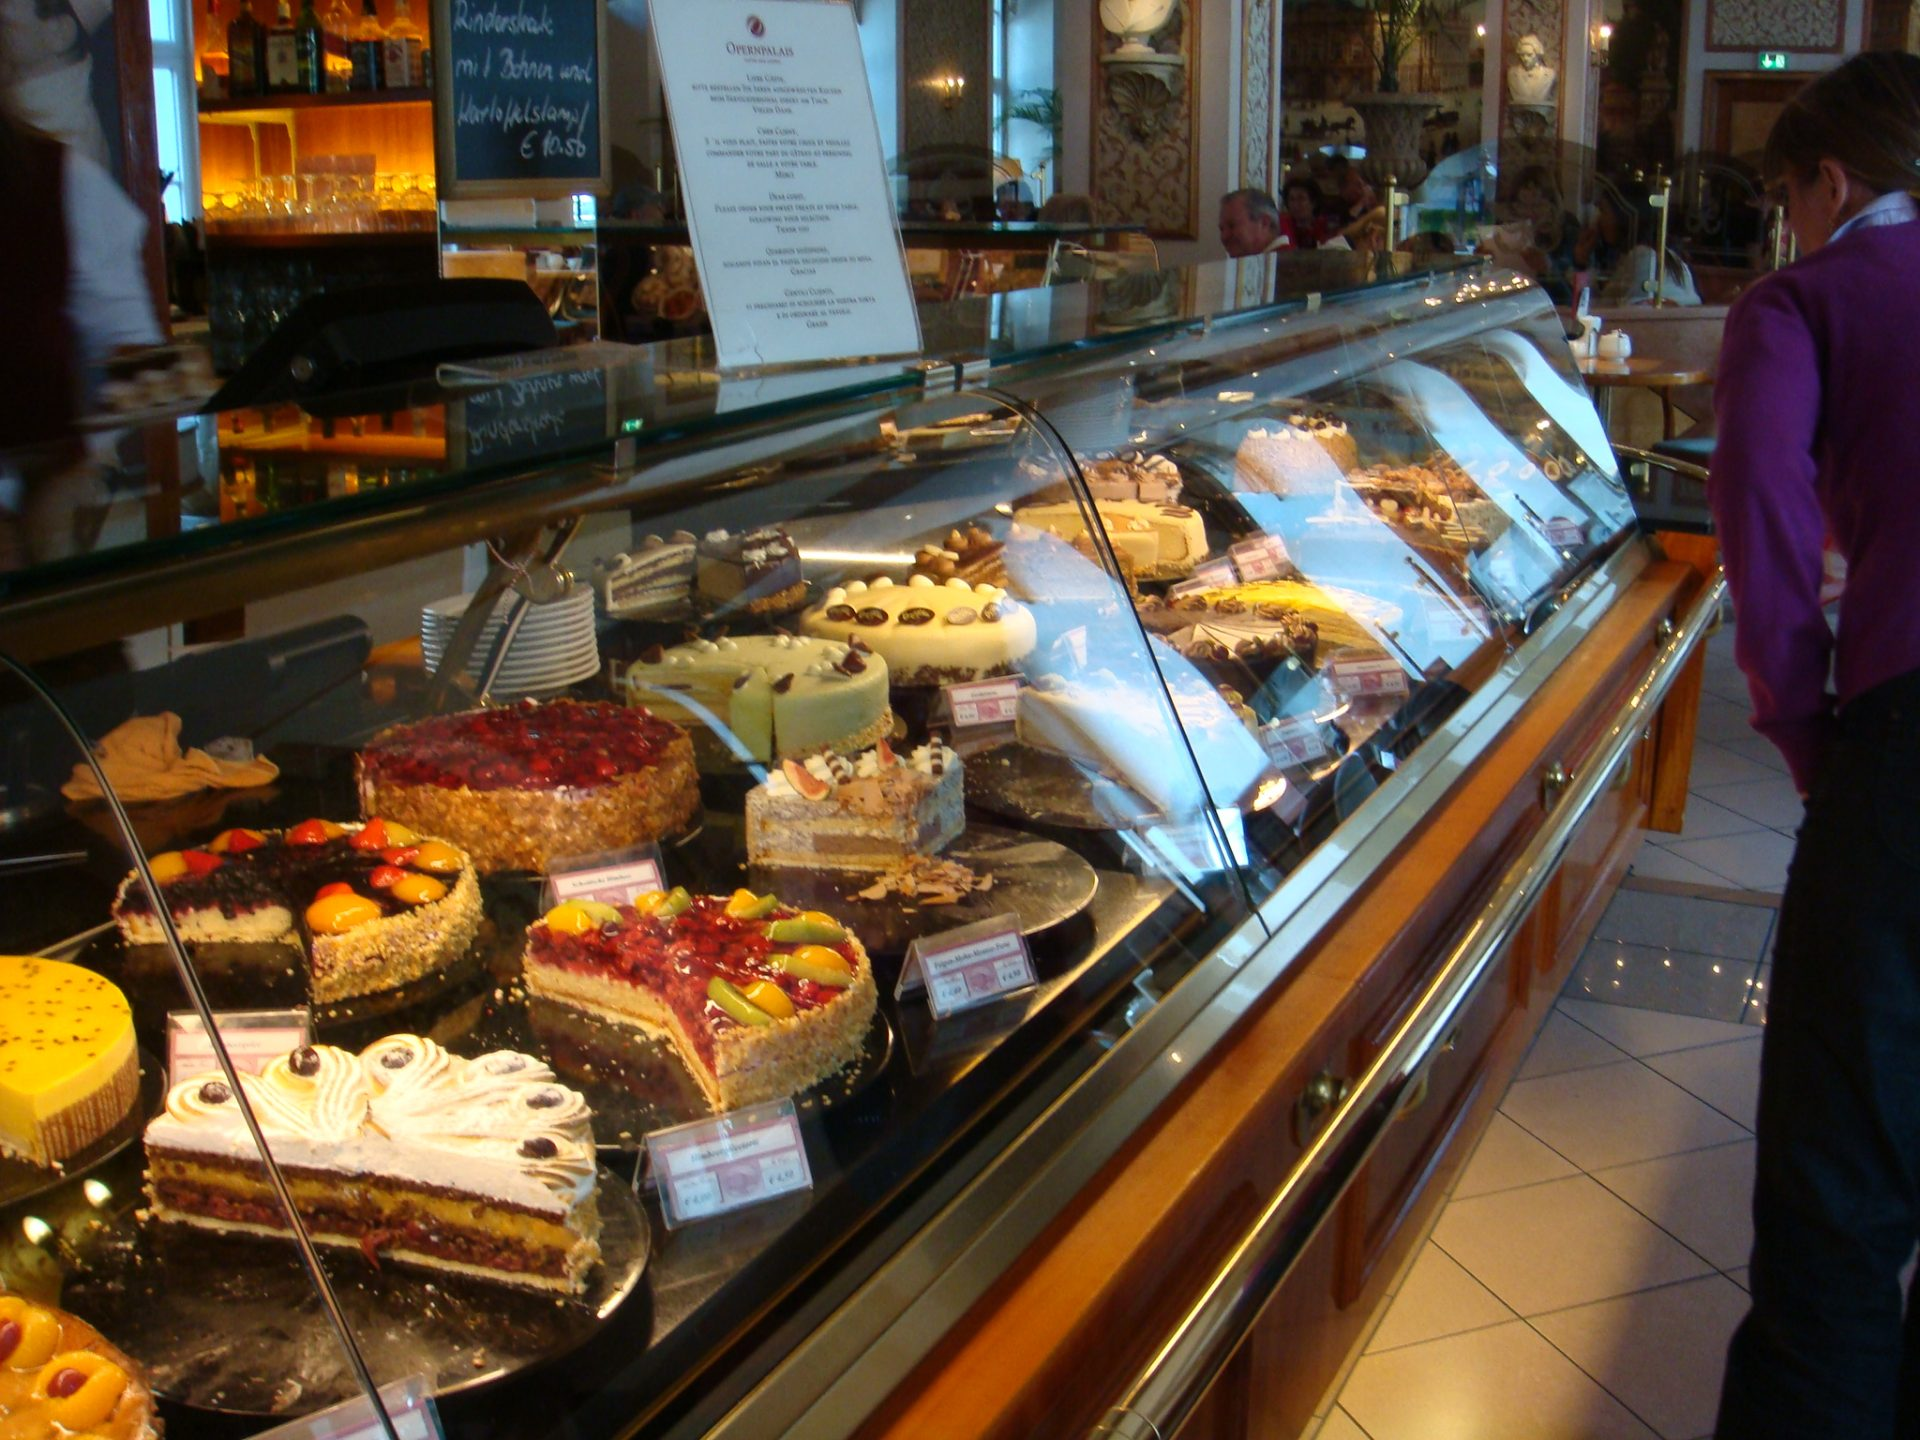 The famous cake selection at Opernhaus Cafe